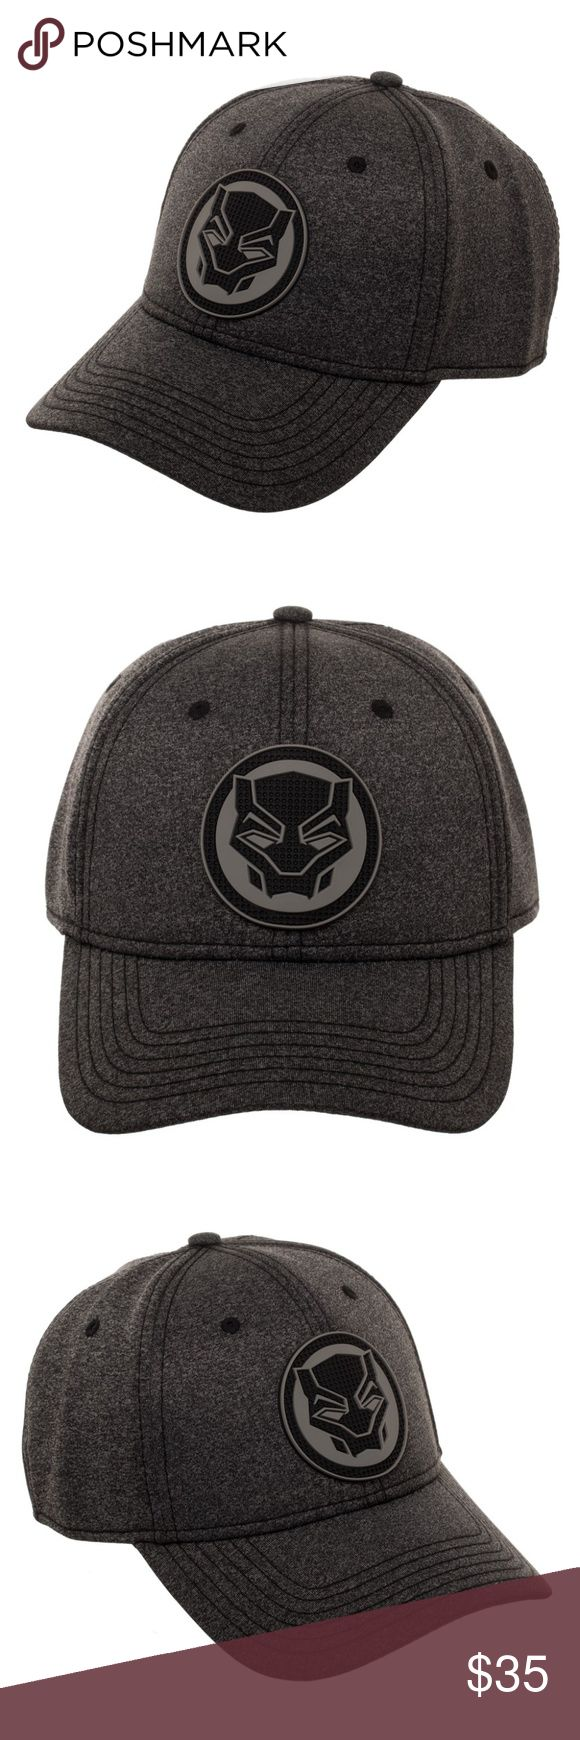 """Black Panther Movie Flex-Fit Hat - OSFM This is for 1 Marvel Comics / Black Panther themed flex-fit Hat  This very nice hat is officially licensed from Bioworld.  This is a flex-fit hat - one size fits most.  It features the Black Panther logo on the front.  In the back it reads """"The Black Panther""""    Size:  Flex-Fit - One Size Fits Most  CONDITION - New  Great for any Marvel Comics or Black Panther fan!  Makes a great gift!   Check out my Posh for more Black Panther and Marvel items…"""